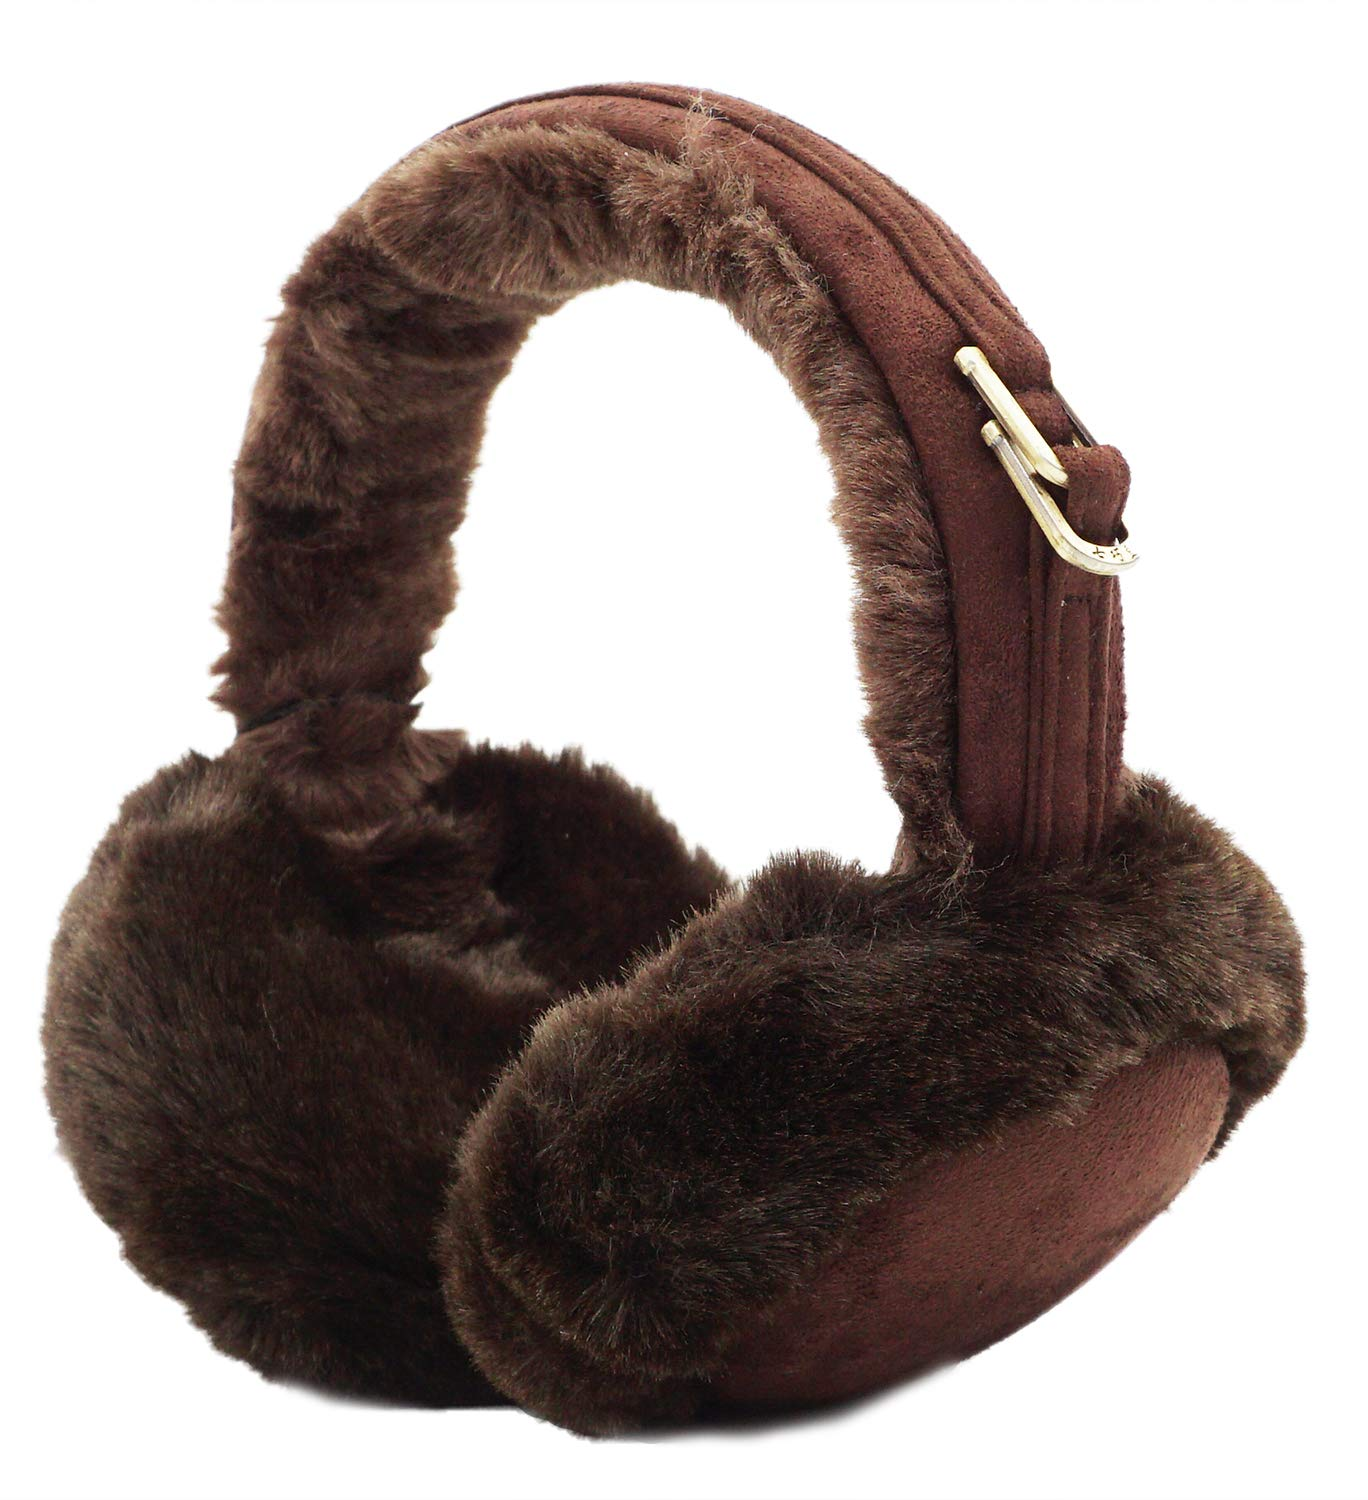 Lovful Womens Ladies Knit Earmuffs Winter Cold Weather Snow Outdoor Ear Protection, Coffee